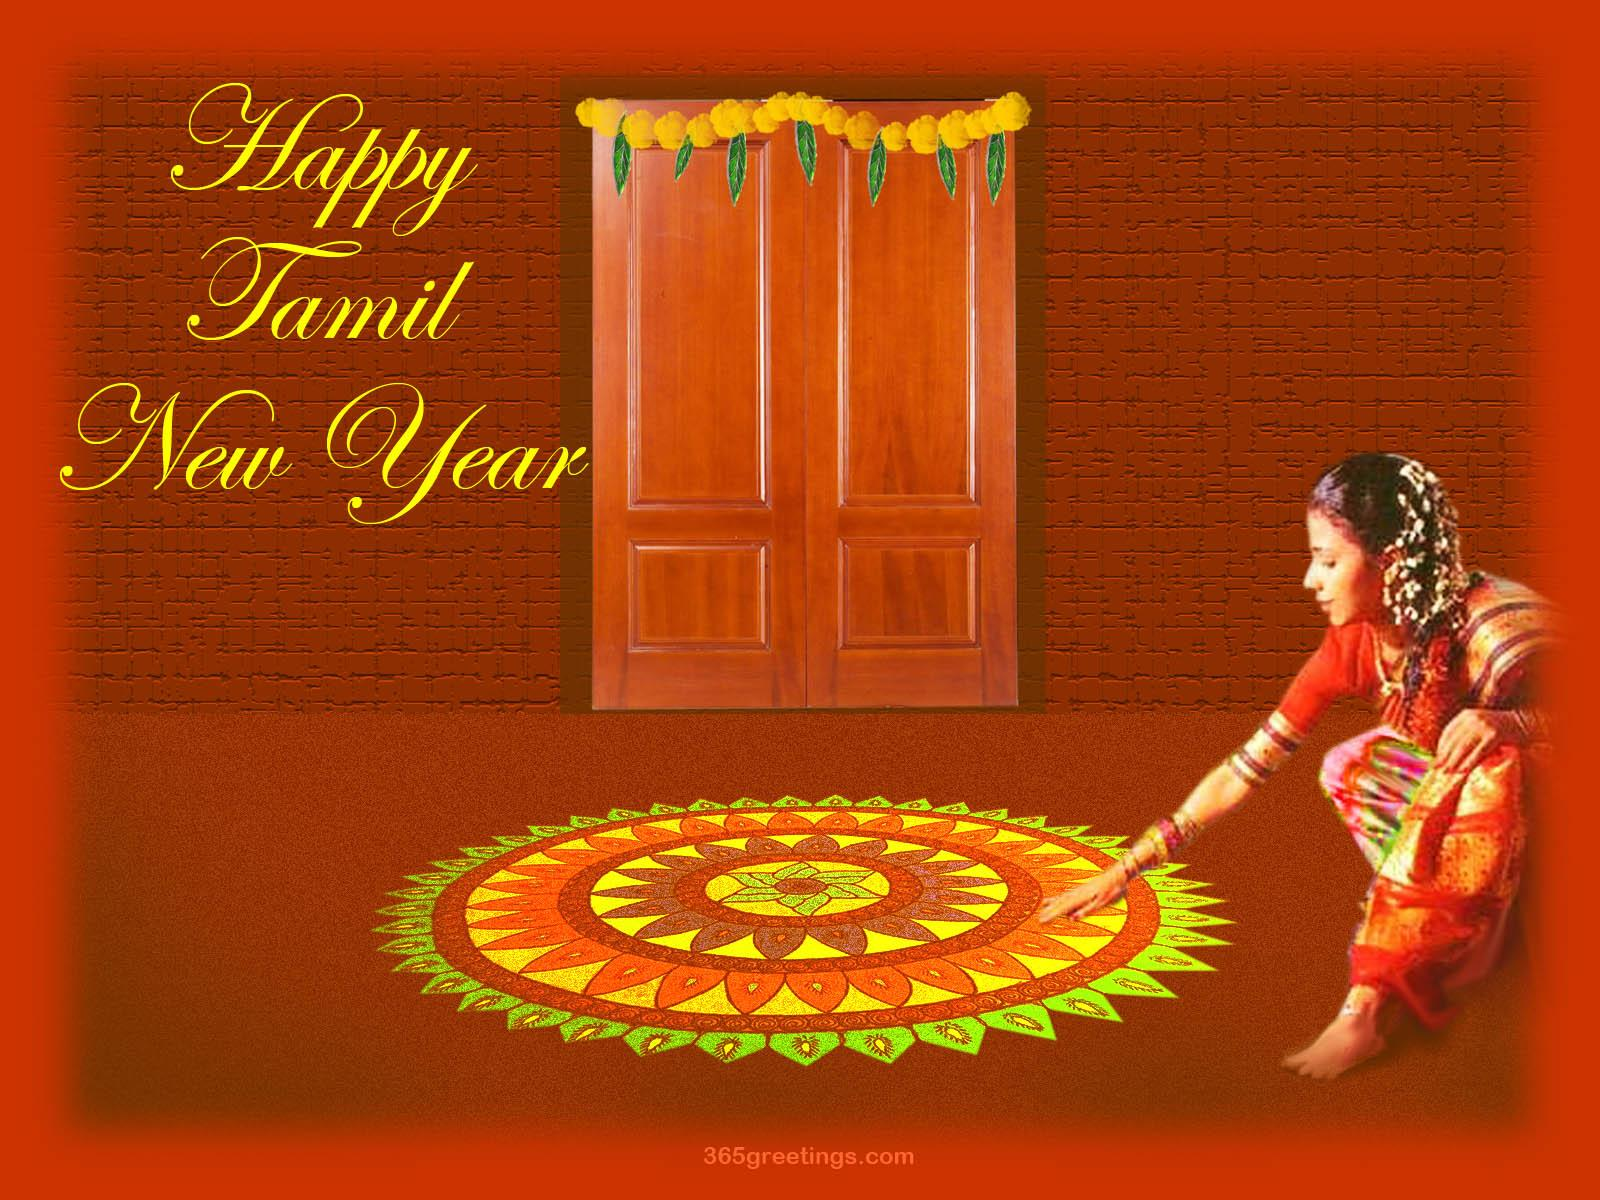 Tamil New Year Greetings Tamil New Year 2012 Greetings Tamil